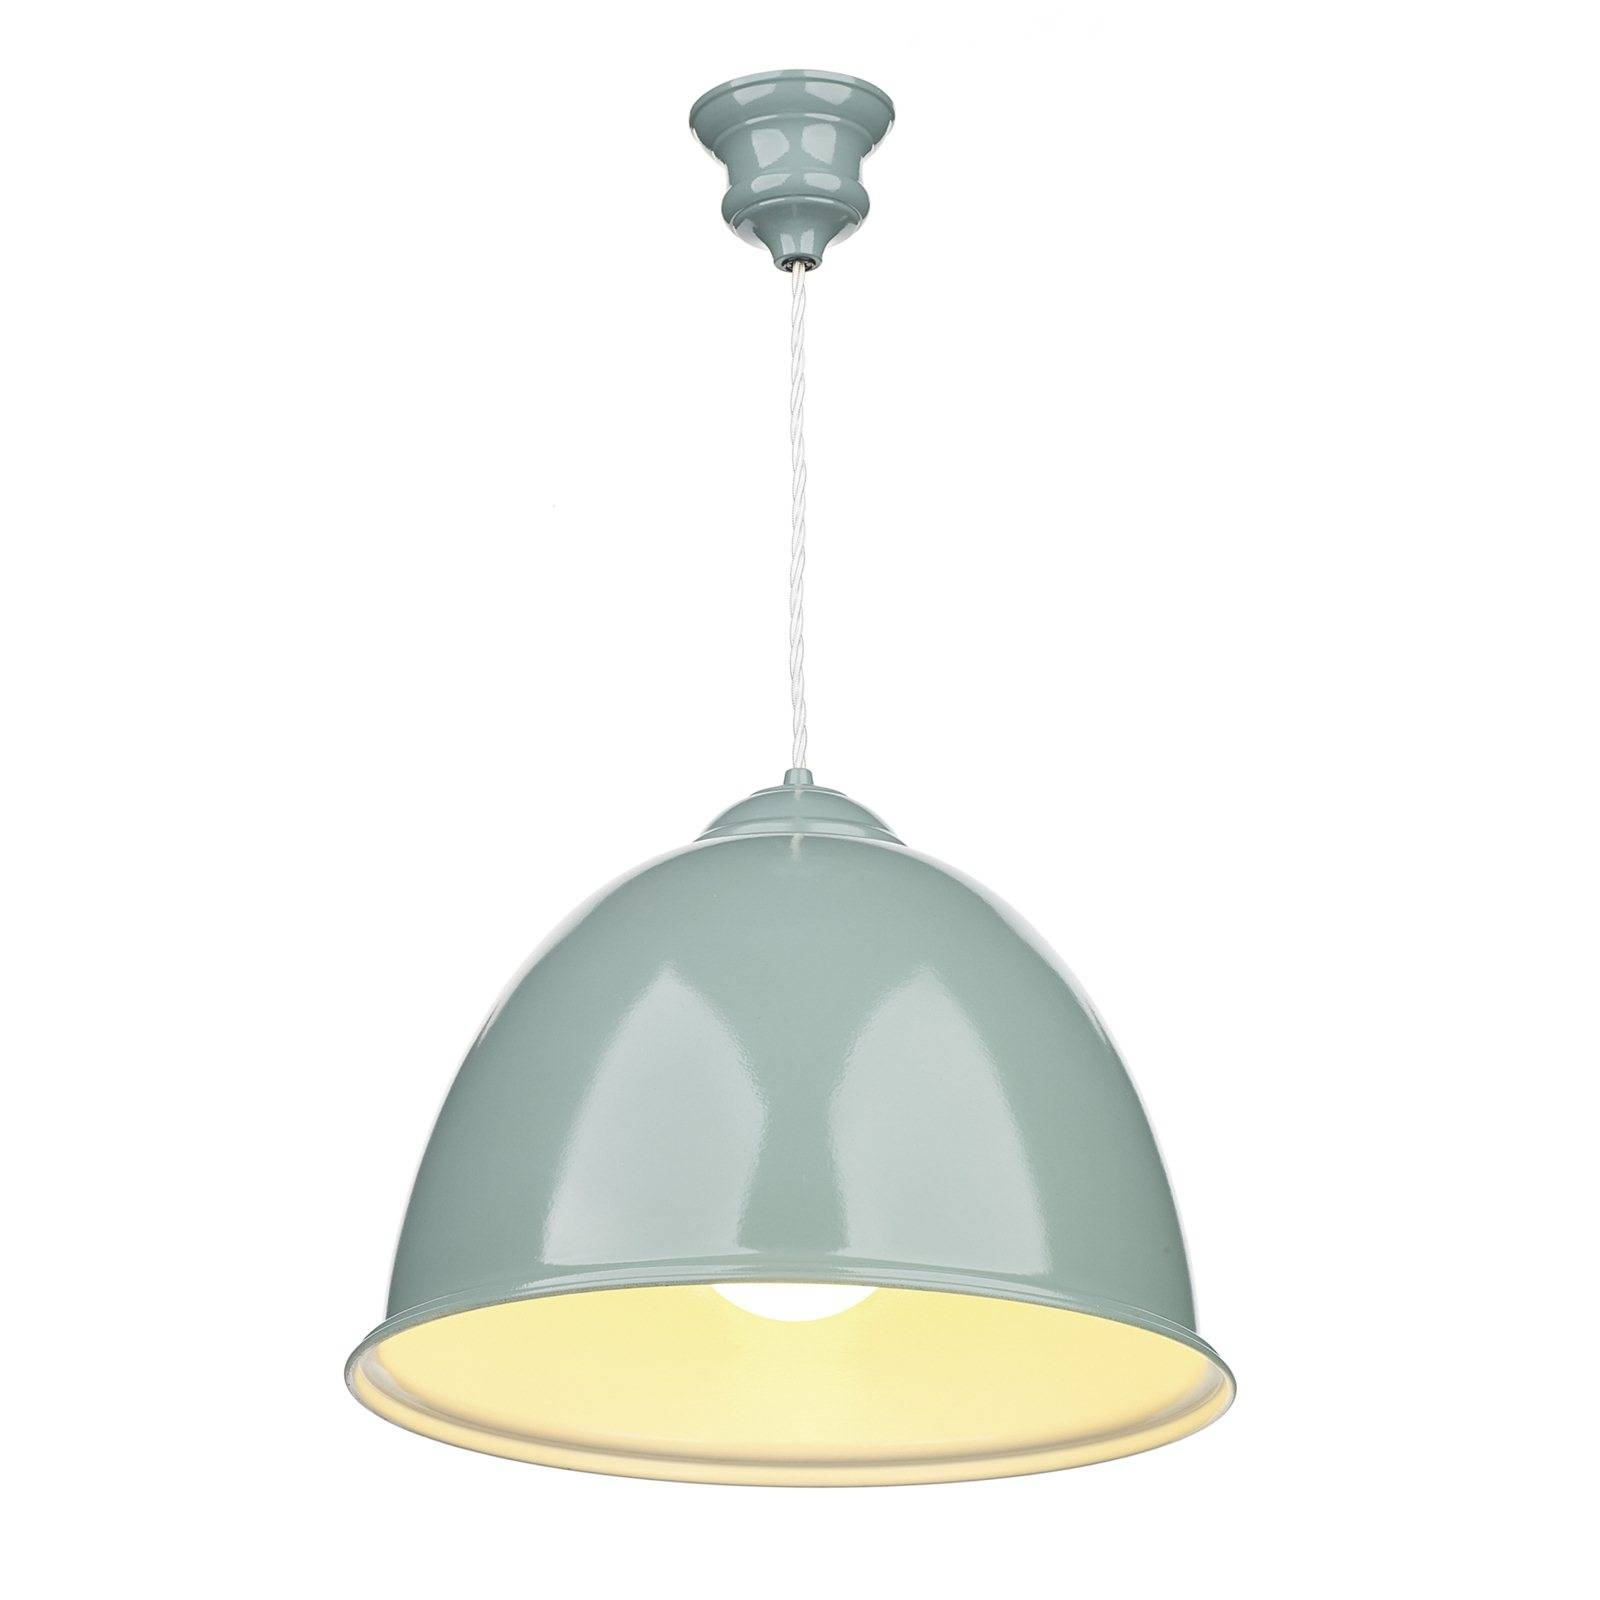 Kitchen Light : Contemporary Pendant Lighting Adapters Kitchen pertaining to Navy Pendant Lights (Image 9 of 15)